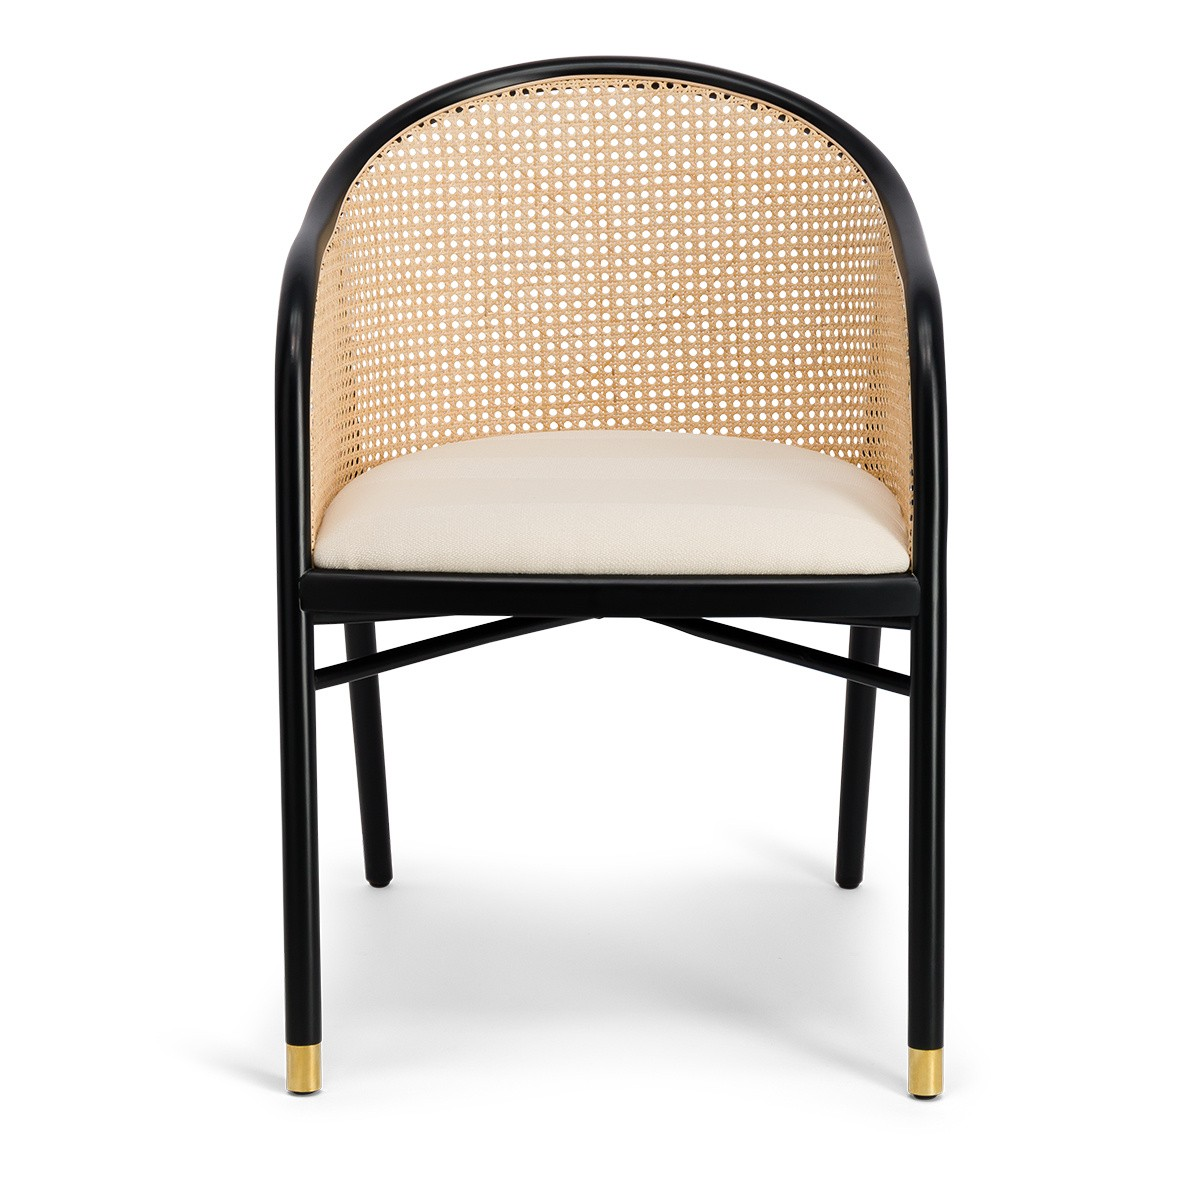 Cavallo Armchair, Kvadrat / Raf Simons Cream White Wool with Black Lacquered Beechwood Frame - Limited Edition